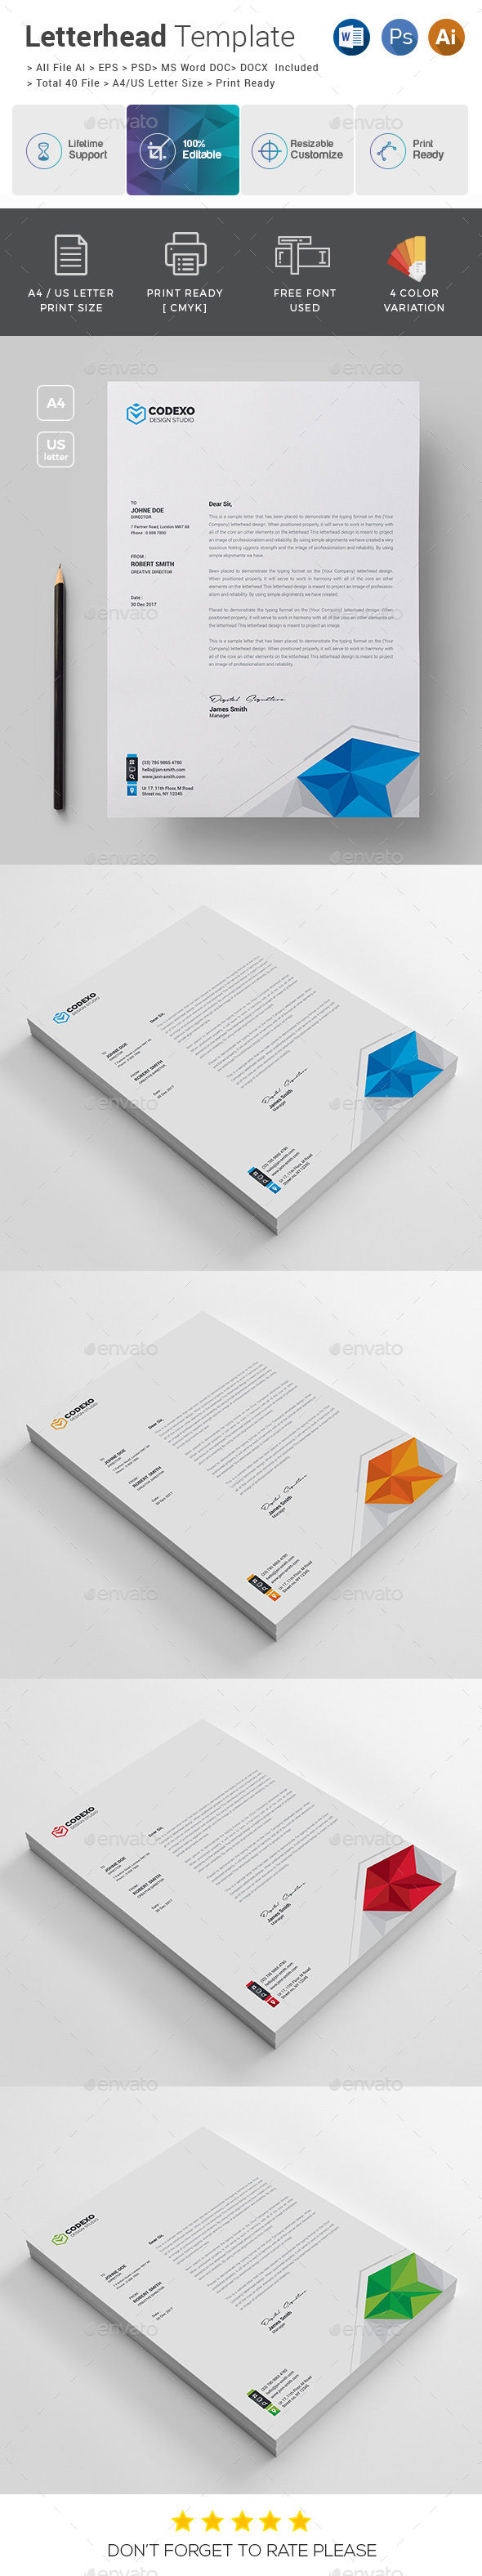 GraphicRiver Letterhead Template 21109785